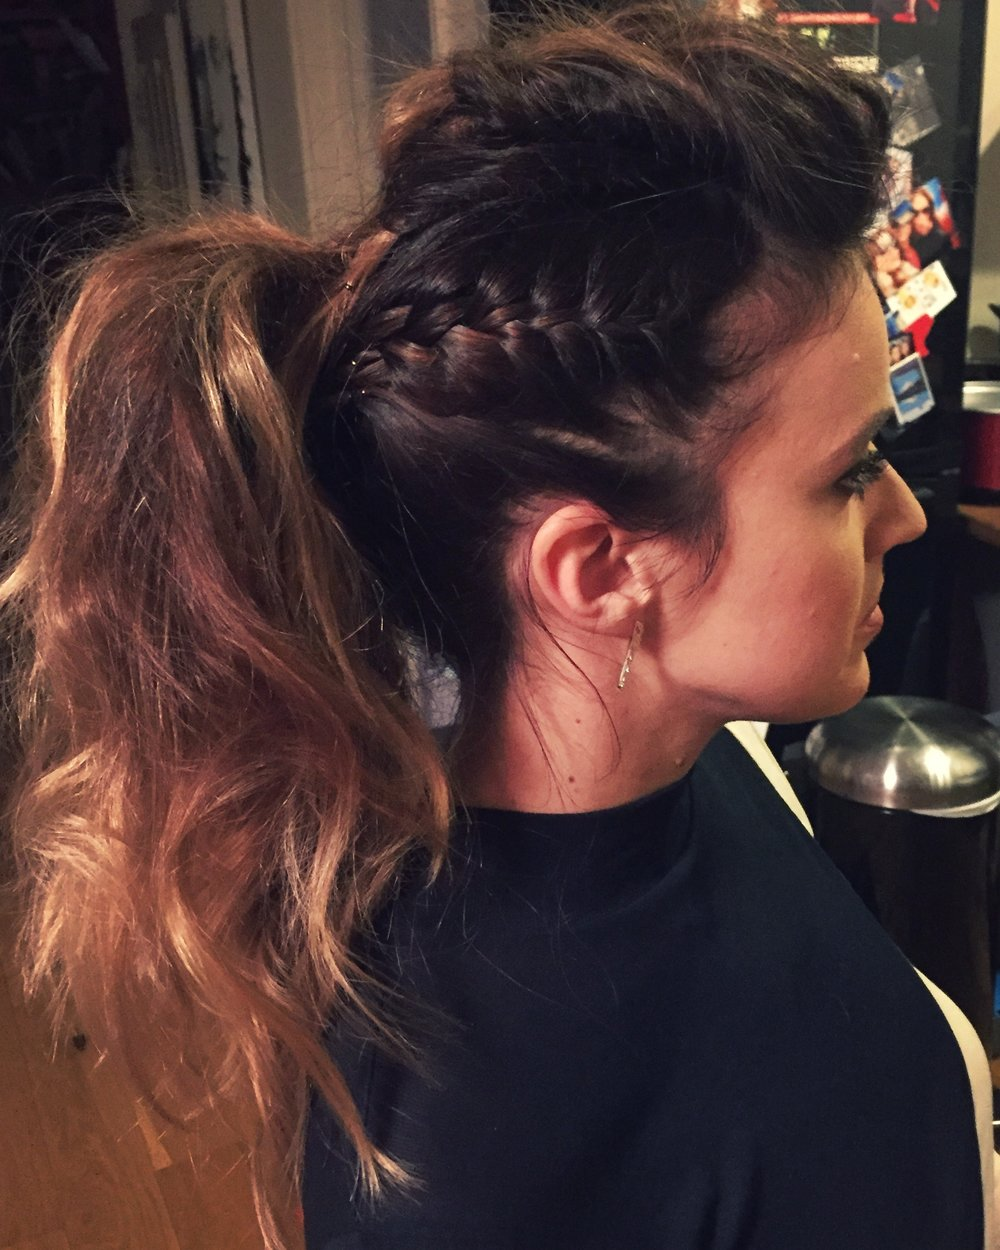 Edgy braided pony - This tousled style might not be everyone's cuppa tea, but if you do like a slightly edgier look then something like this or even a faux hawk might be worth a try.